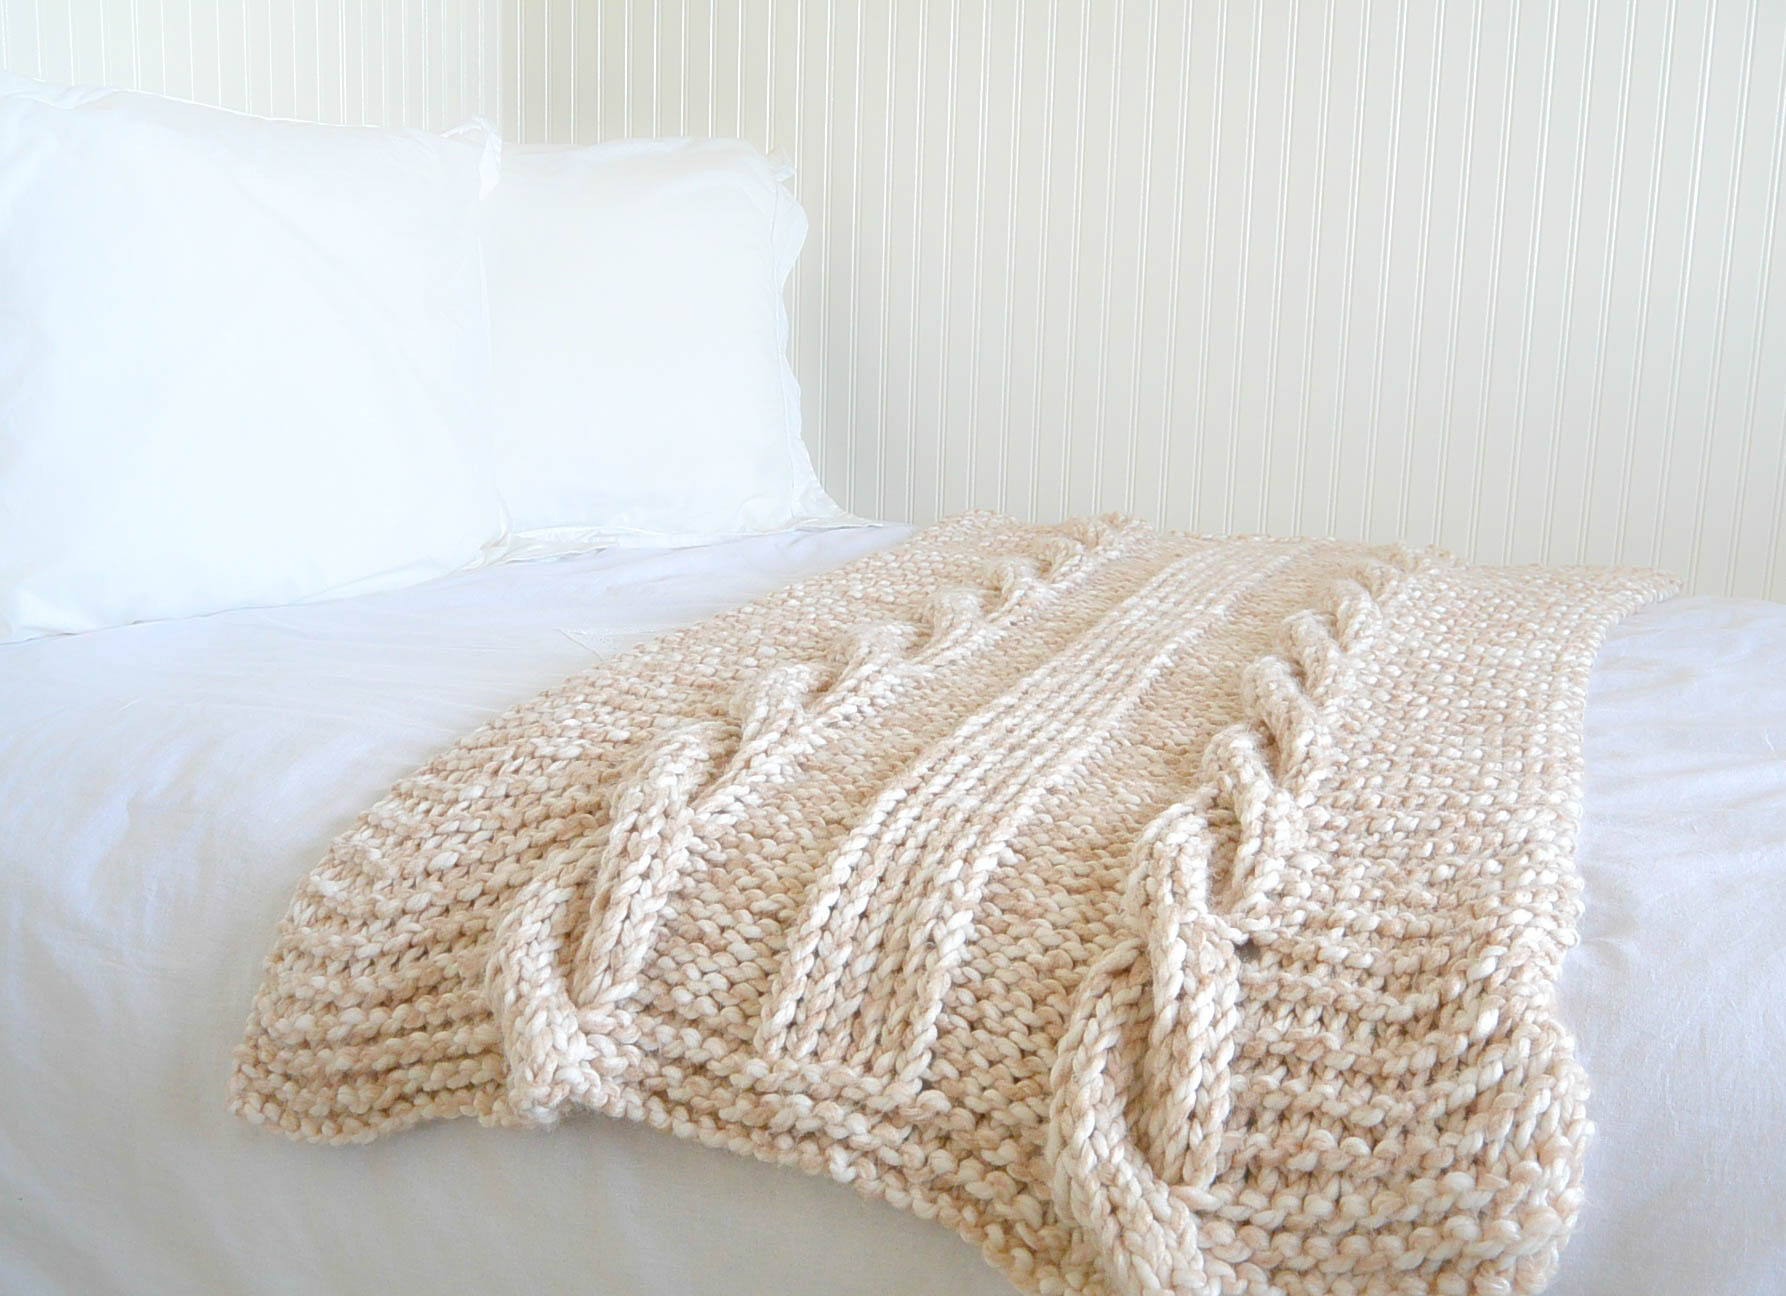 Knitting Pattern For A Throw Blanket : Endless Cables Chunky Knit Throw Pattern   Mama In A Stitch